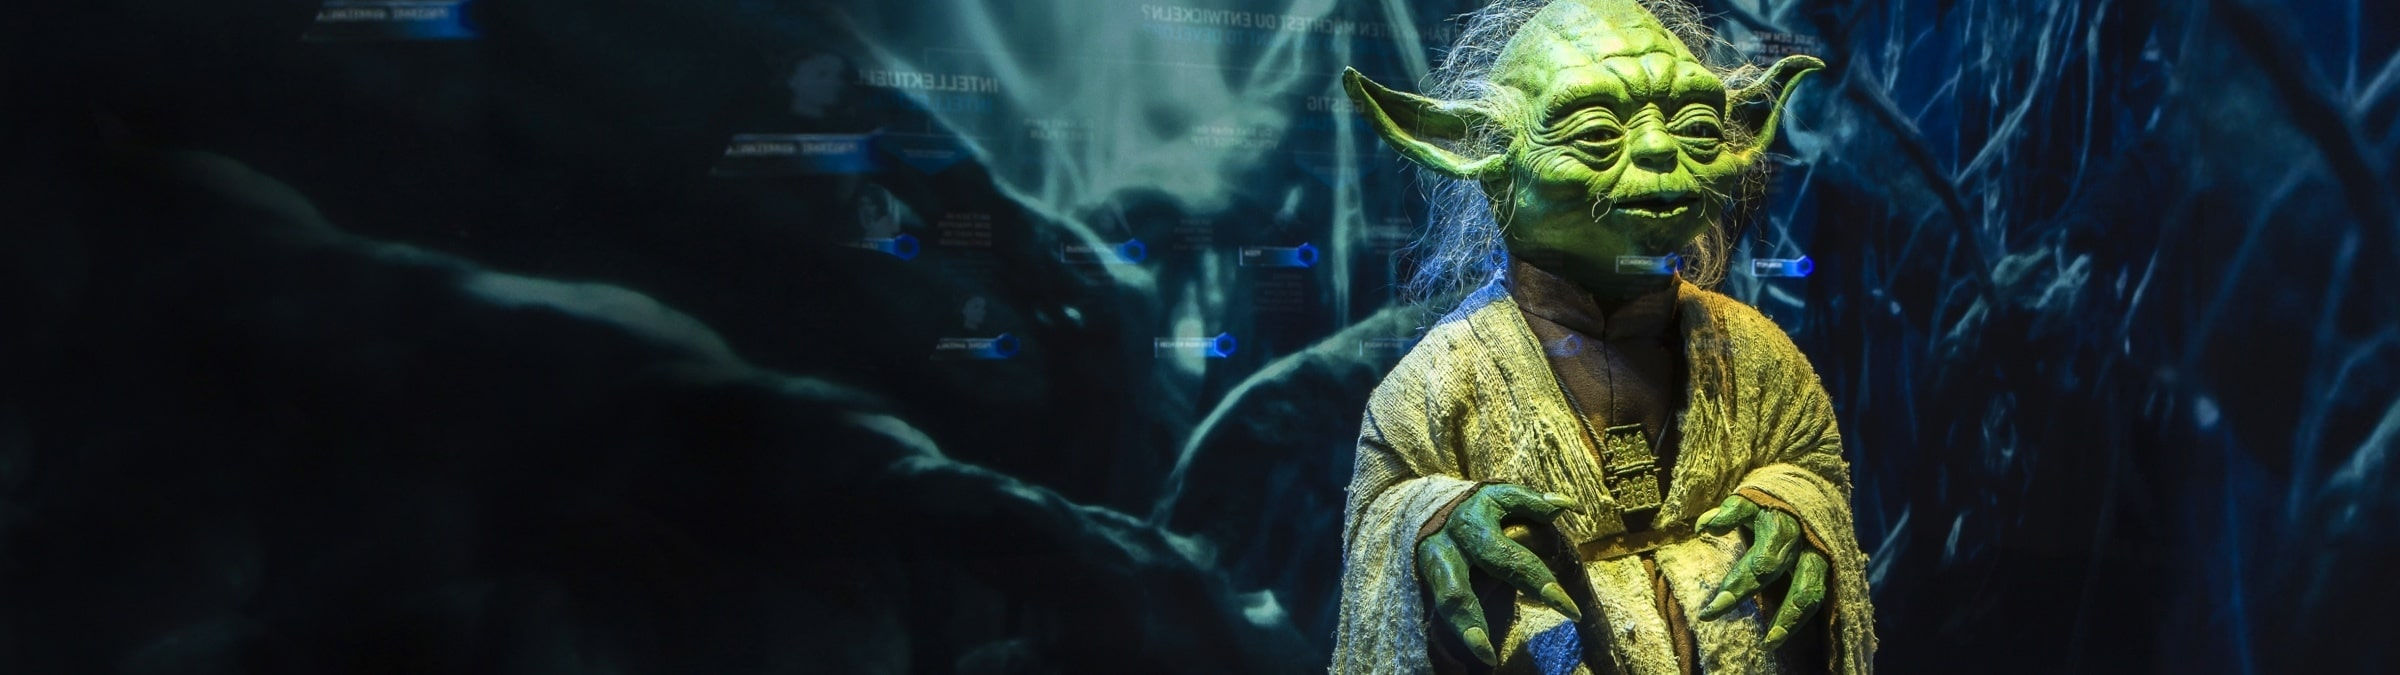 Star Wars Identities: The Exhibition | Tickets